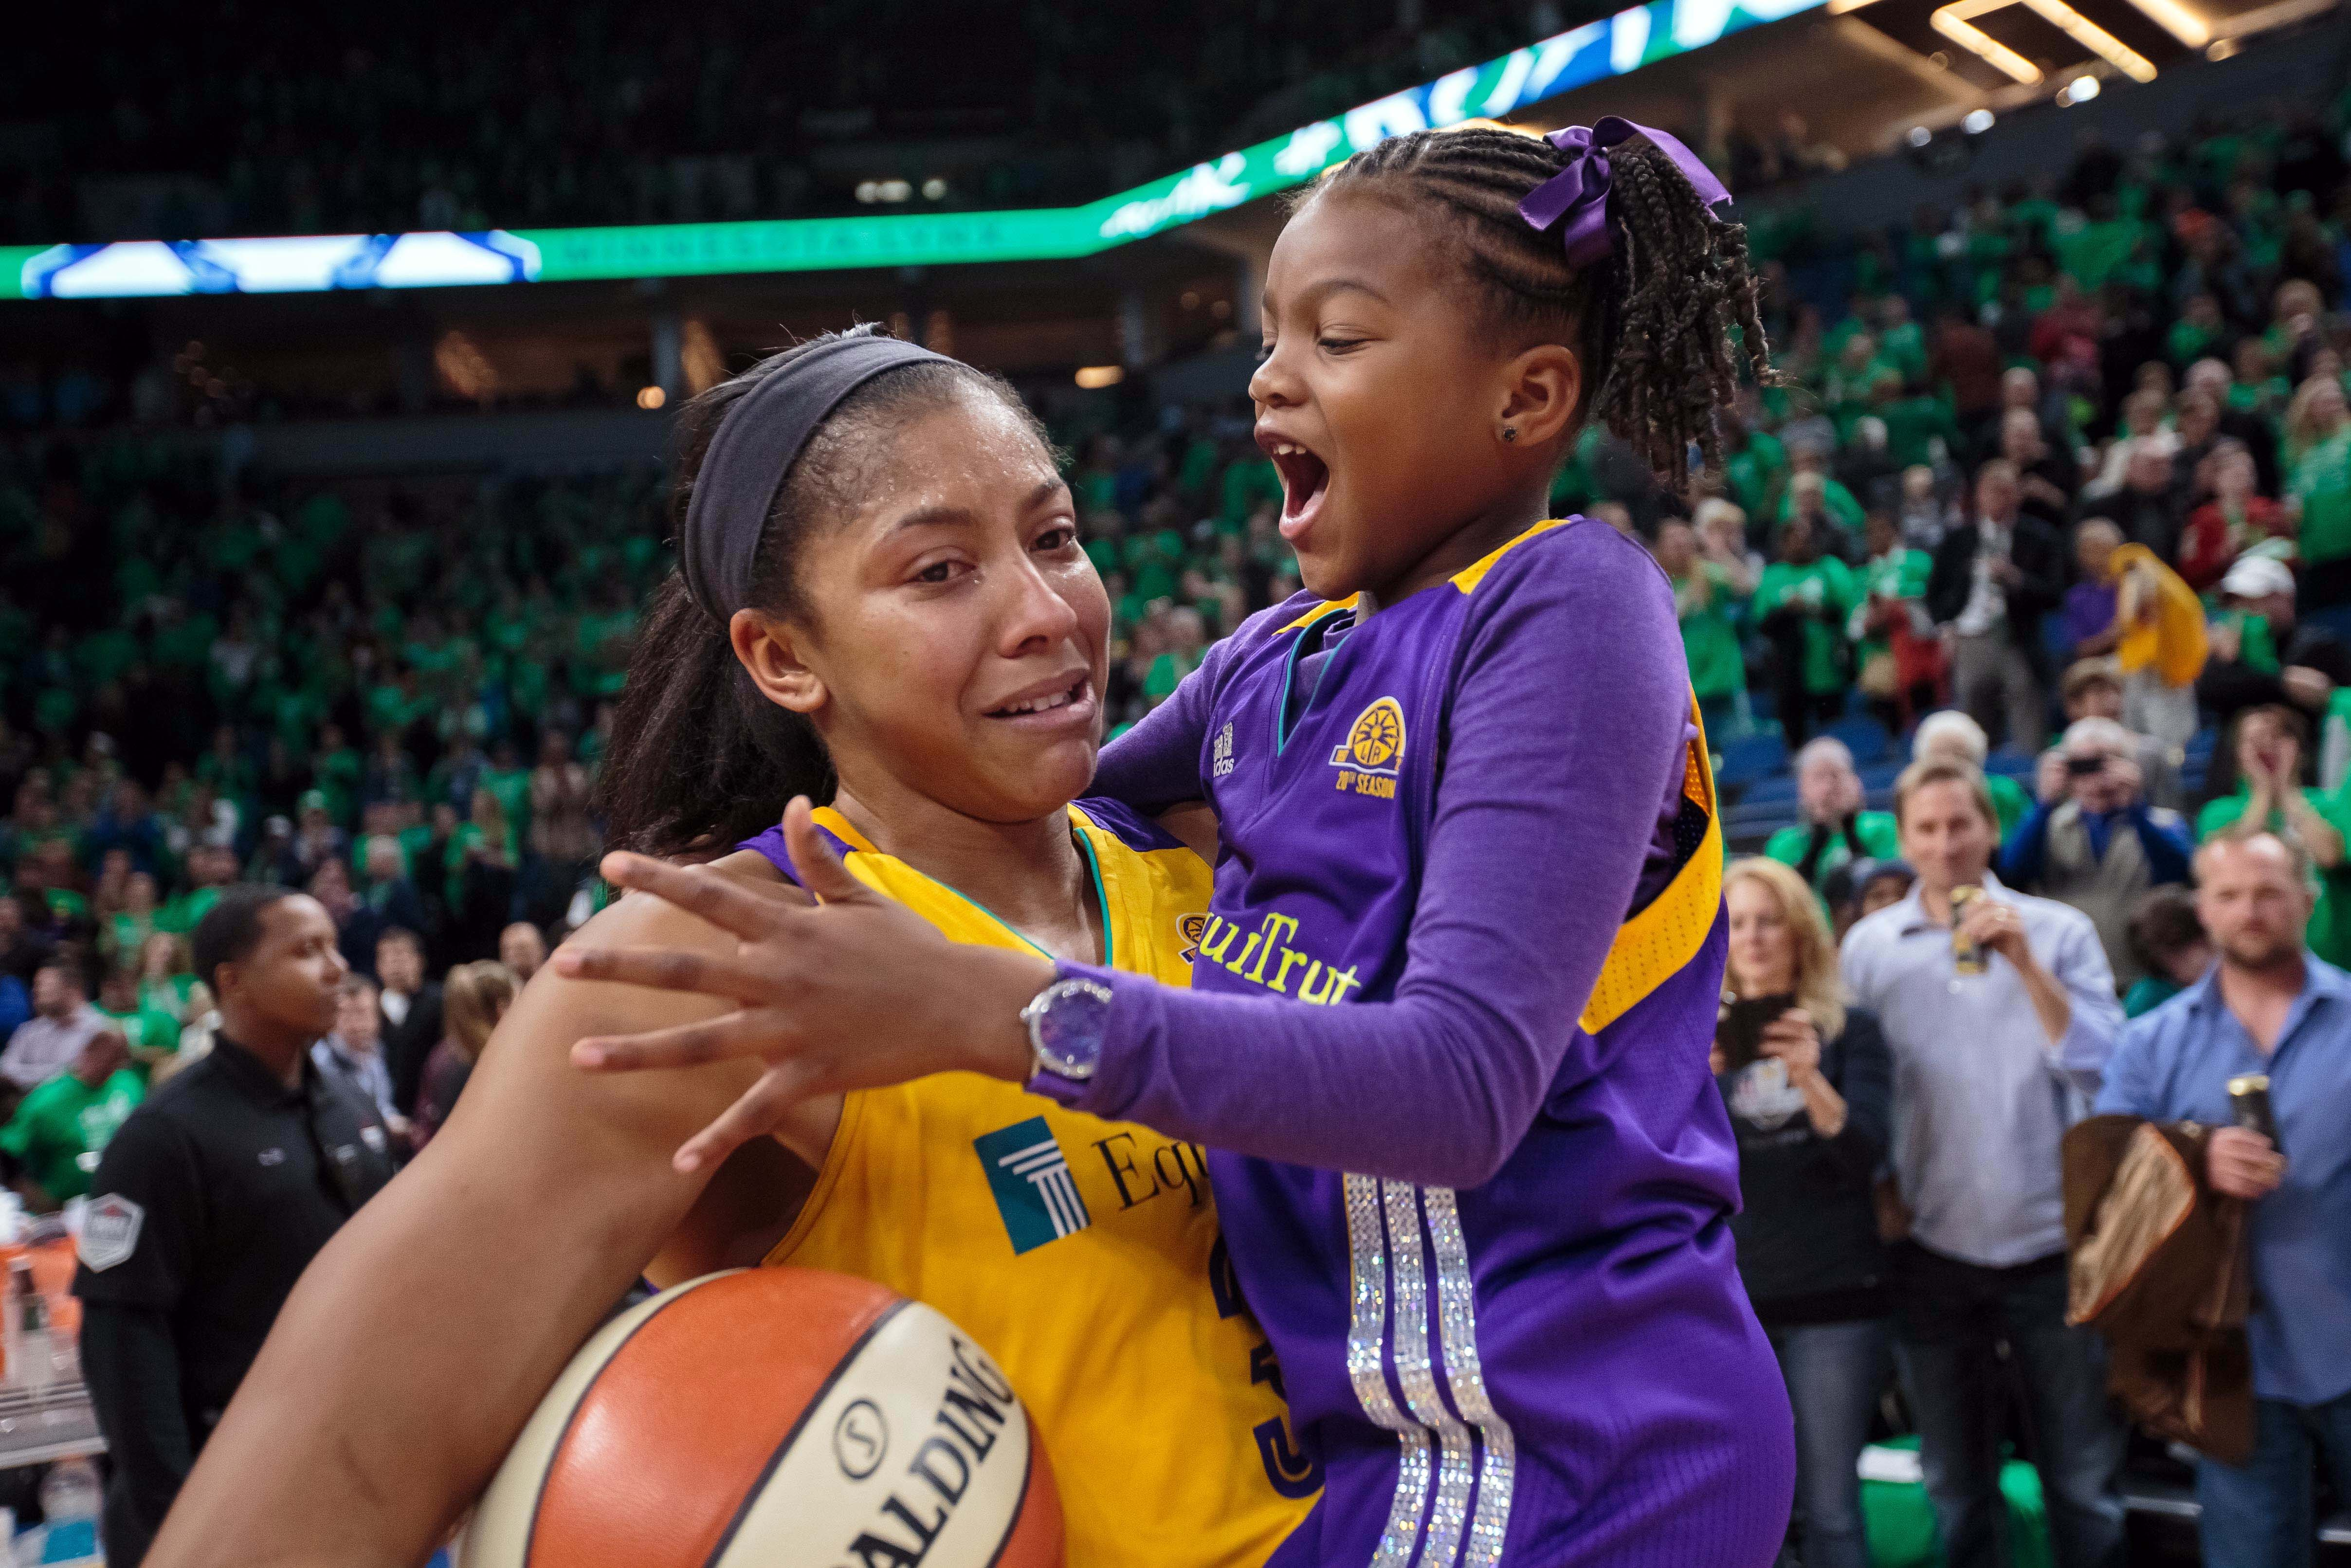 Oct 20, 2016; Minneapolis, MN, USA; Los Angeles Sparks forward Candace Parker (3) celebrates the WNBA Championship with her daughter against the Minnesota Lynx in game five of the WNBA Finals. at Target Center. The Los Angeles Sparks beat the Minnesota Lynx 77-76. Mandatory Credit: Brad Rempel-USA TODAY Sports ORG XMIT: USATSI-337416 ORIG FILE ID: 20161020_tdc_ai9_218.JPG